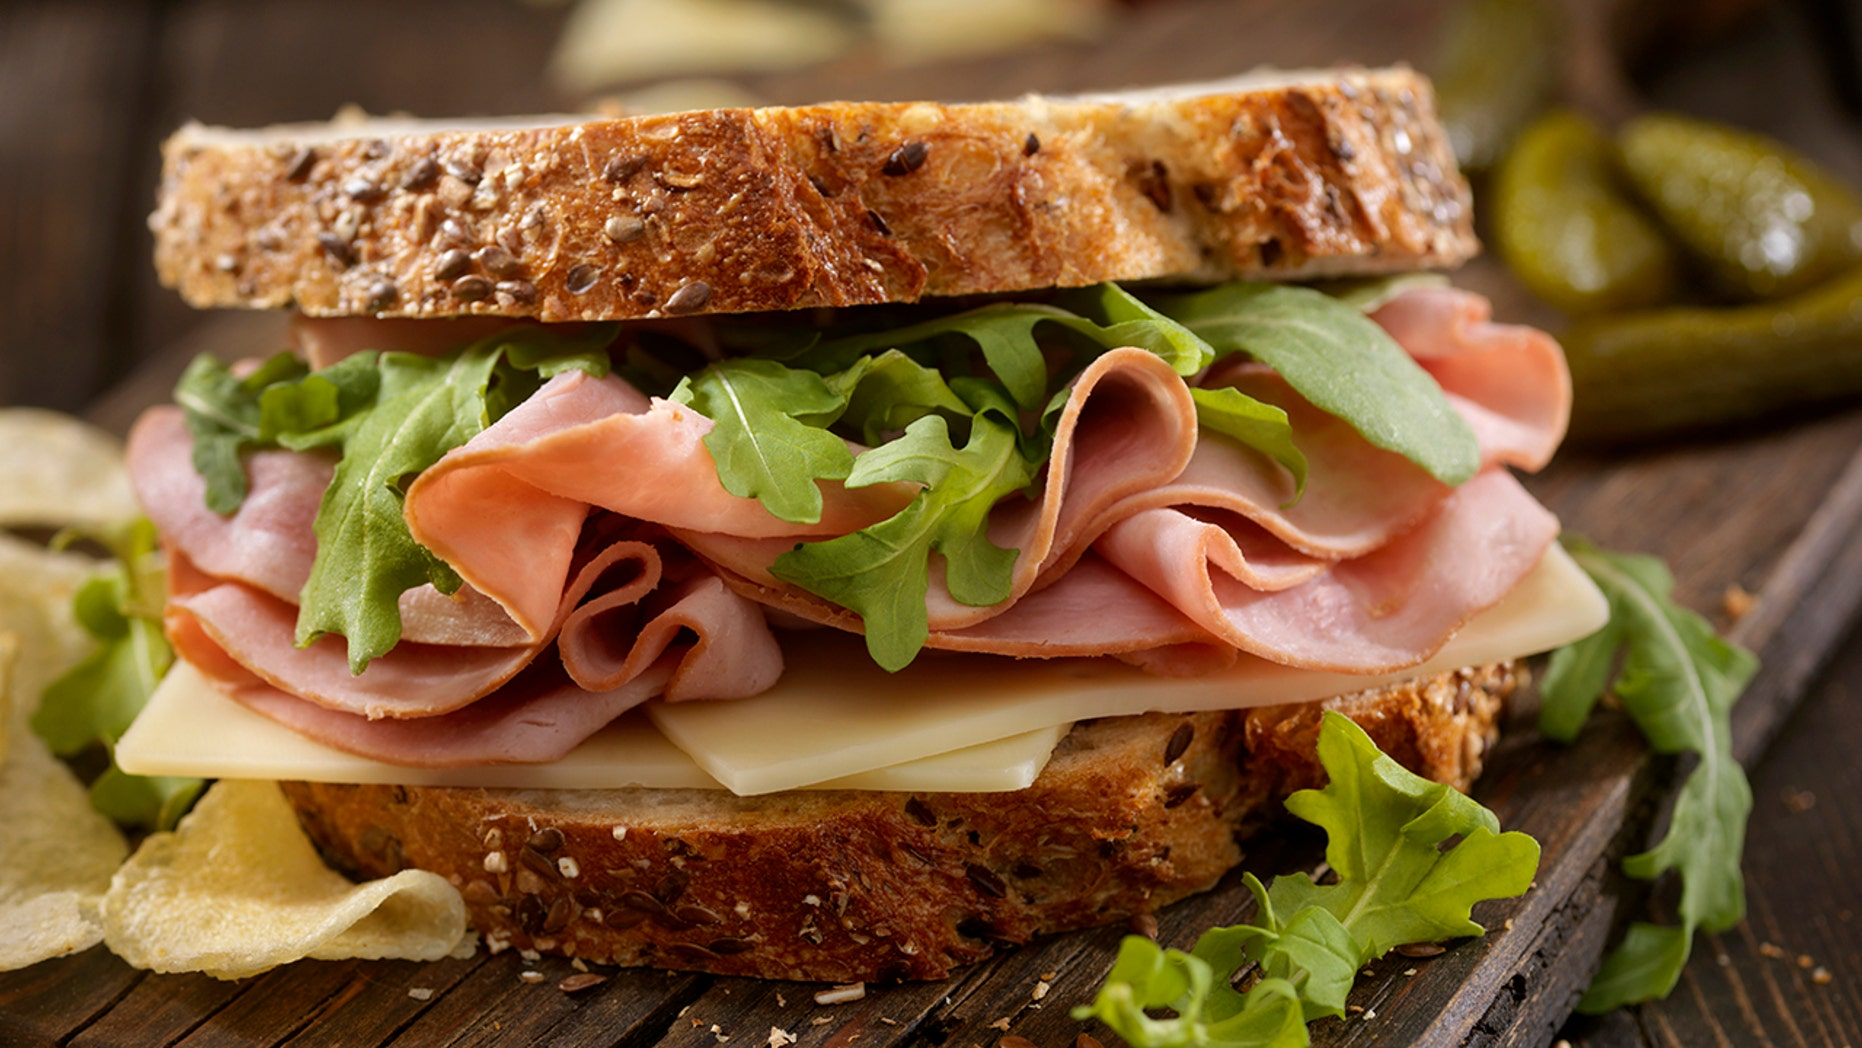 The factory worker was discovered putting powder on a co-worker's sandwich, according to police.